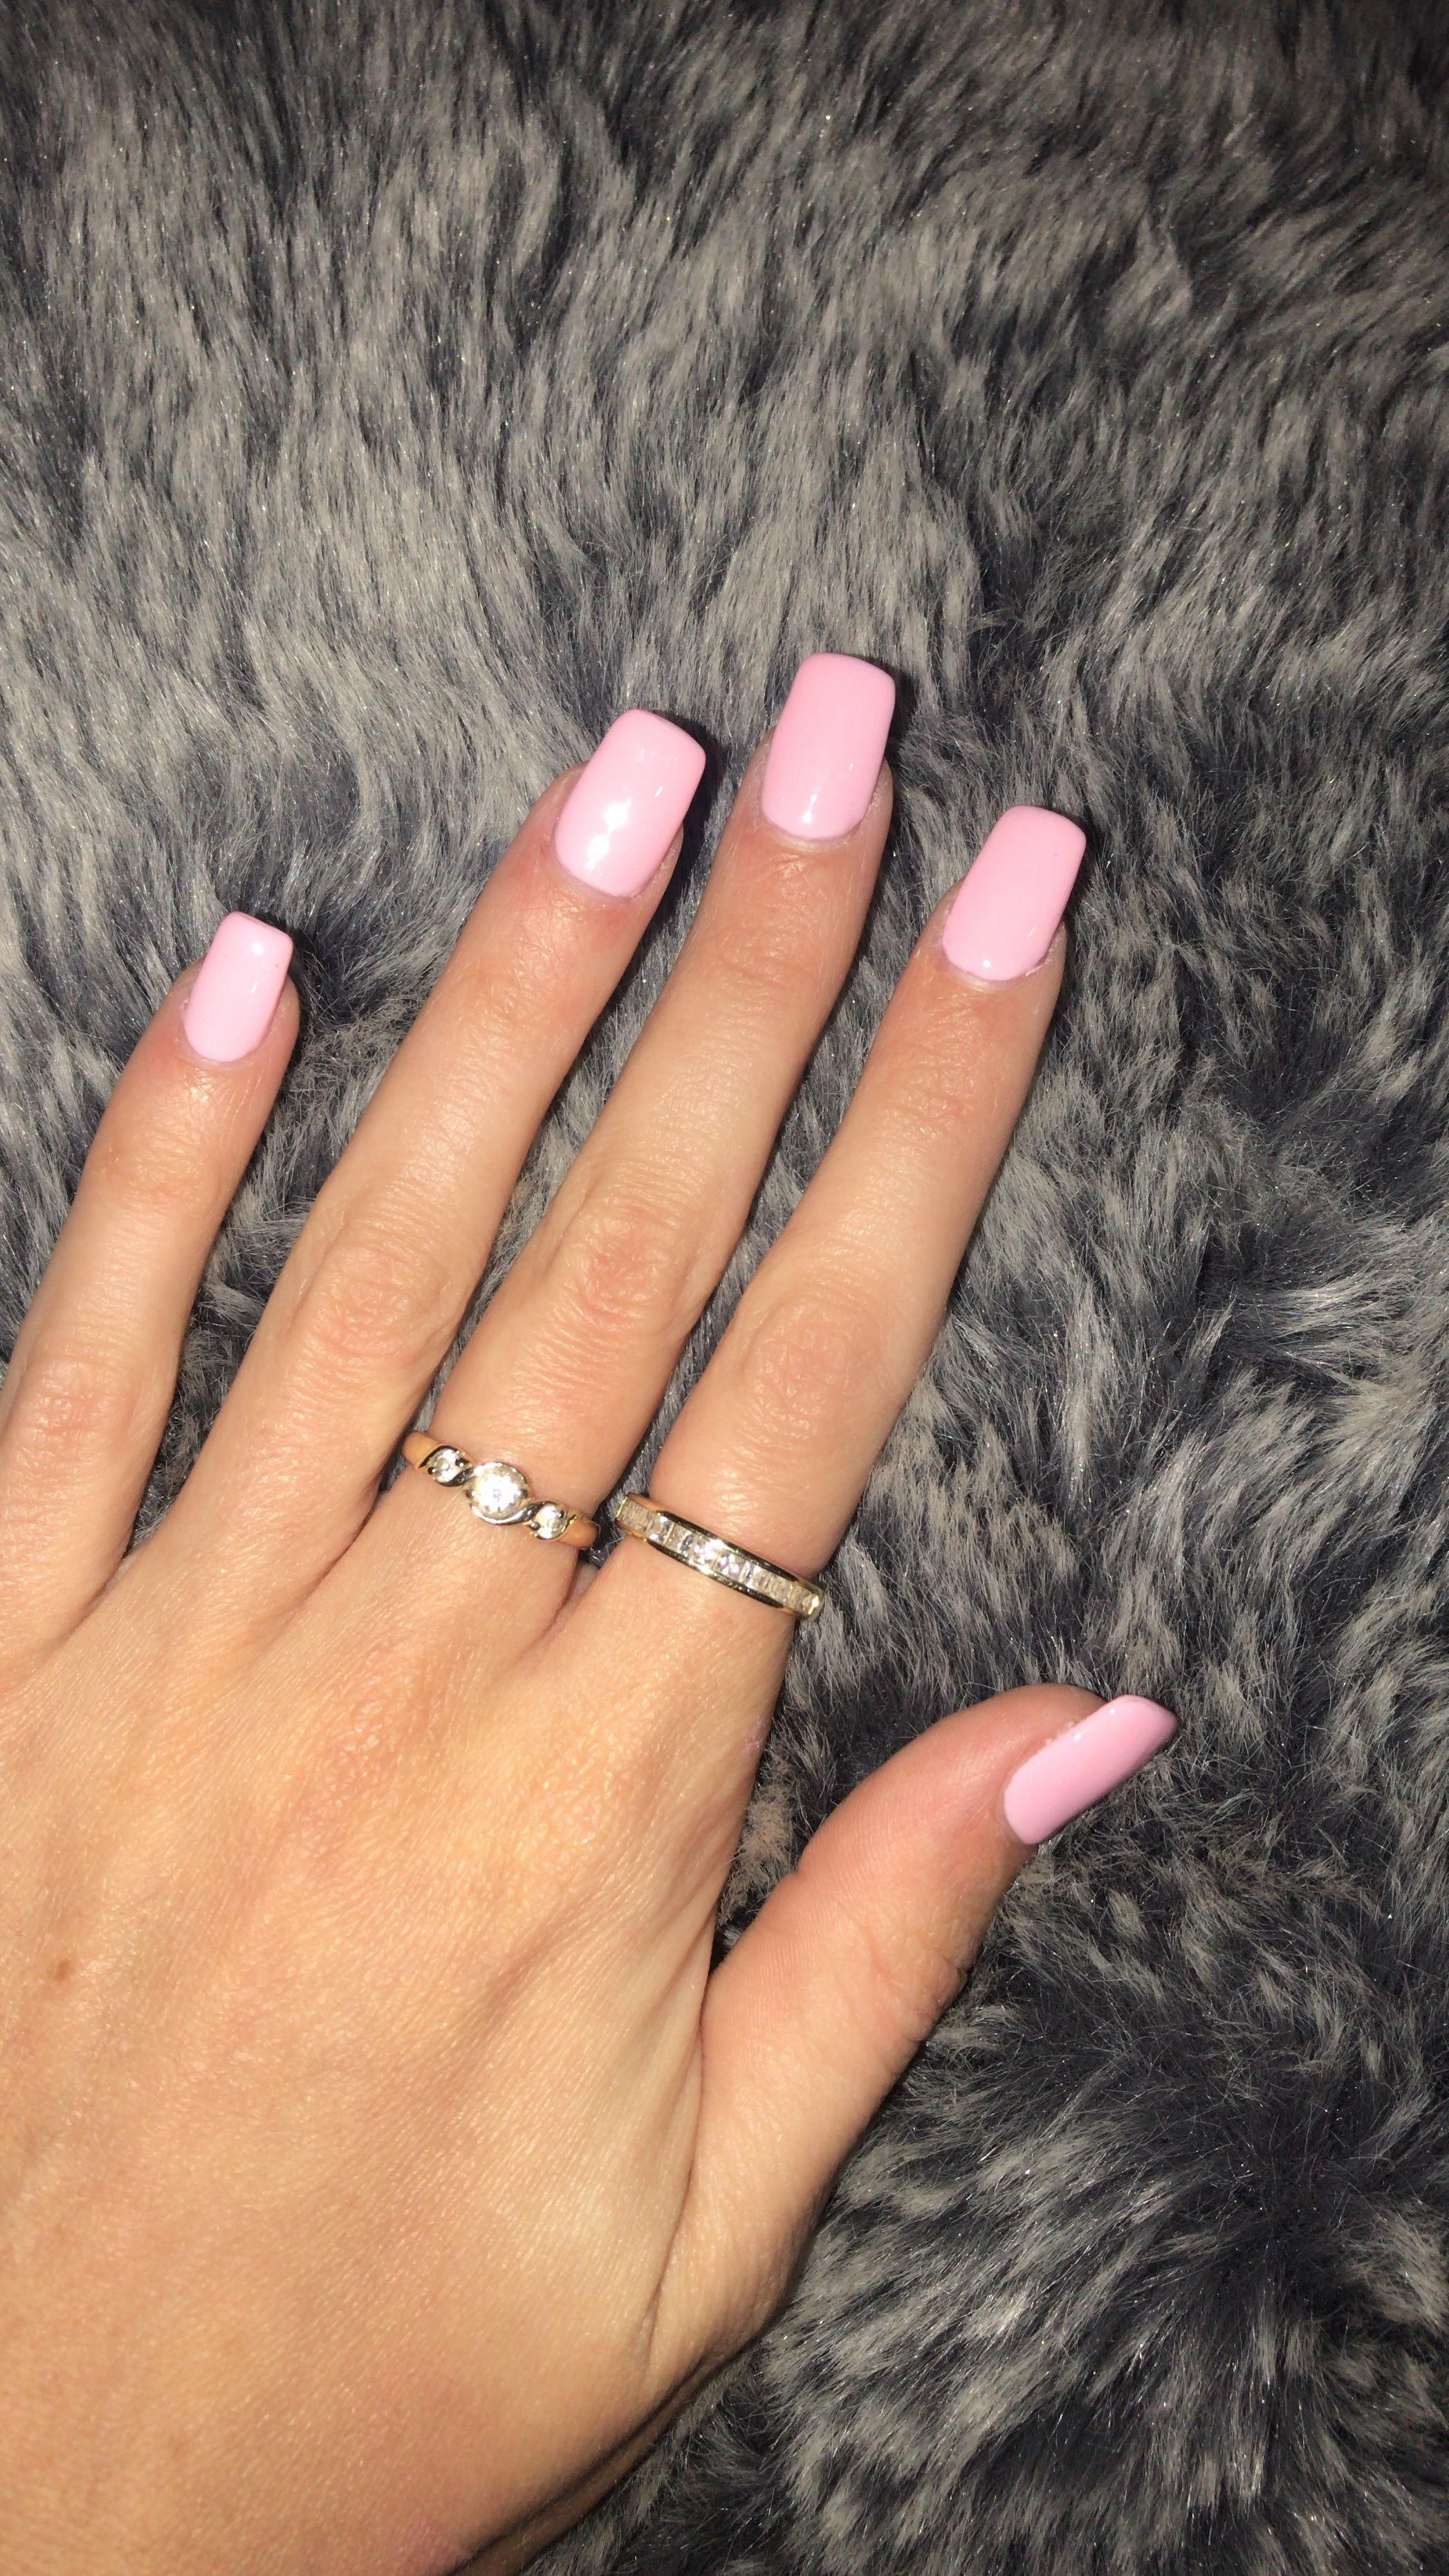 Square baby pink acrylic nails. Colour is Sunset Fog #599. #AcrylicNailsNatural